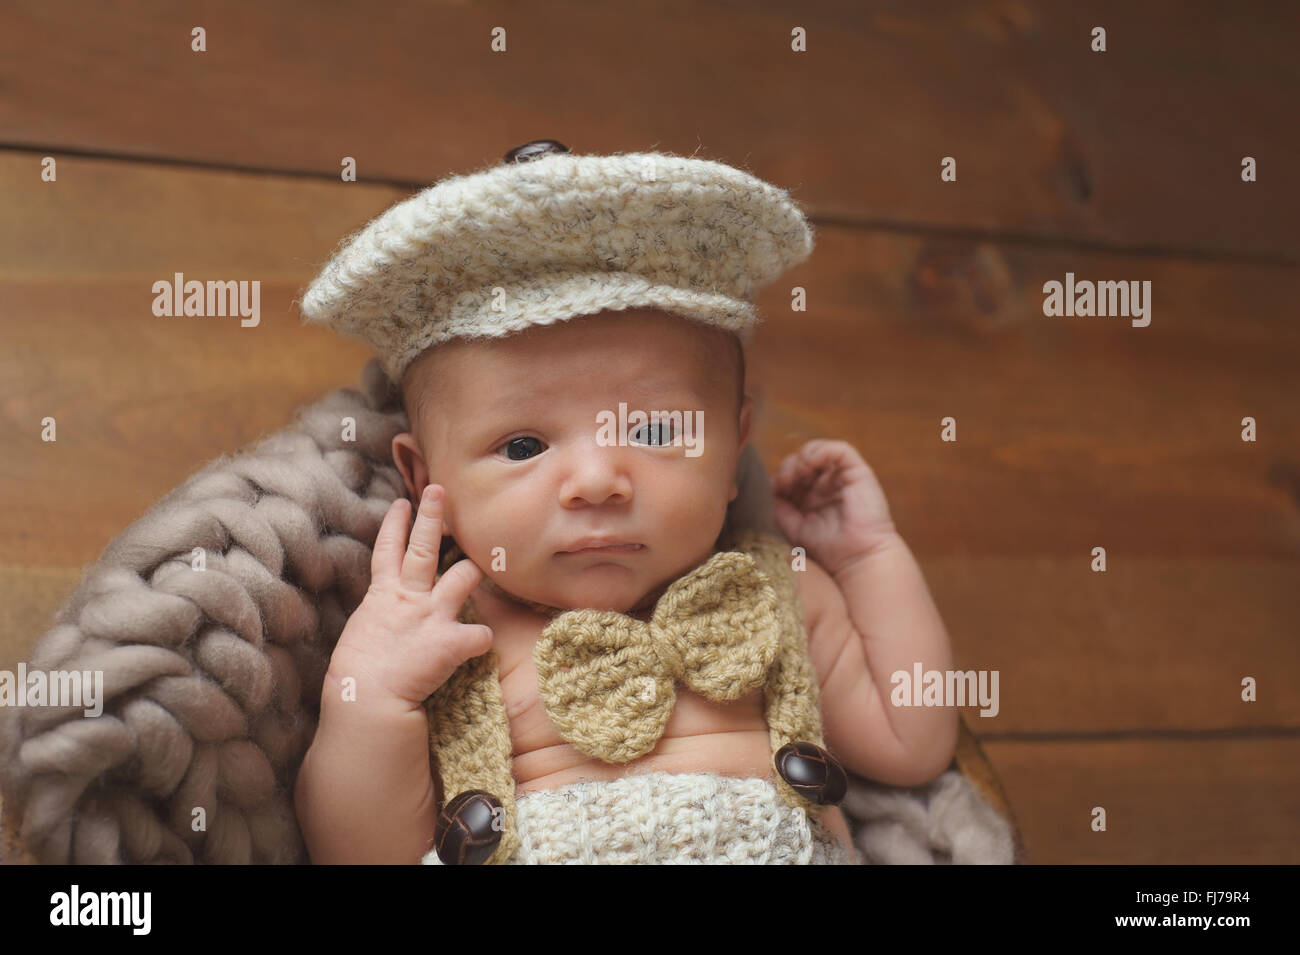 Newborn Baby Boy Wearing a Newsboy Cap and Bowtie - Stock Image